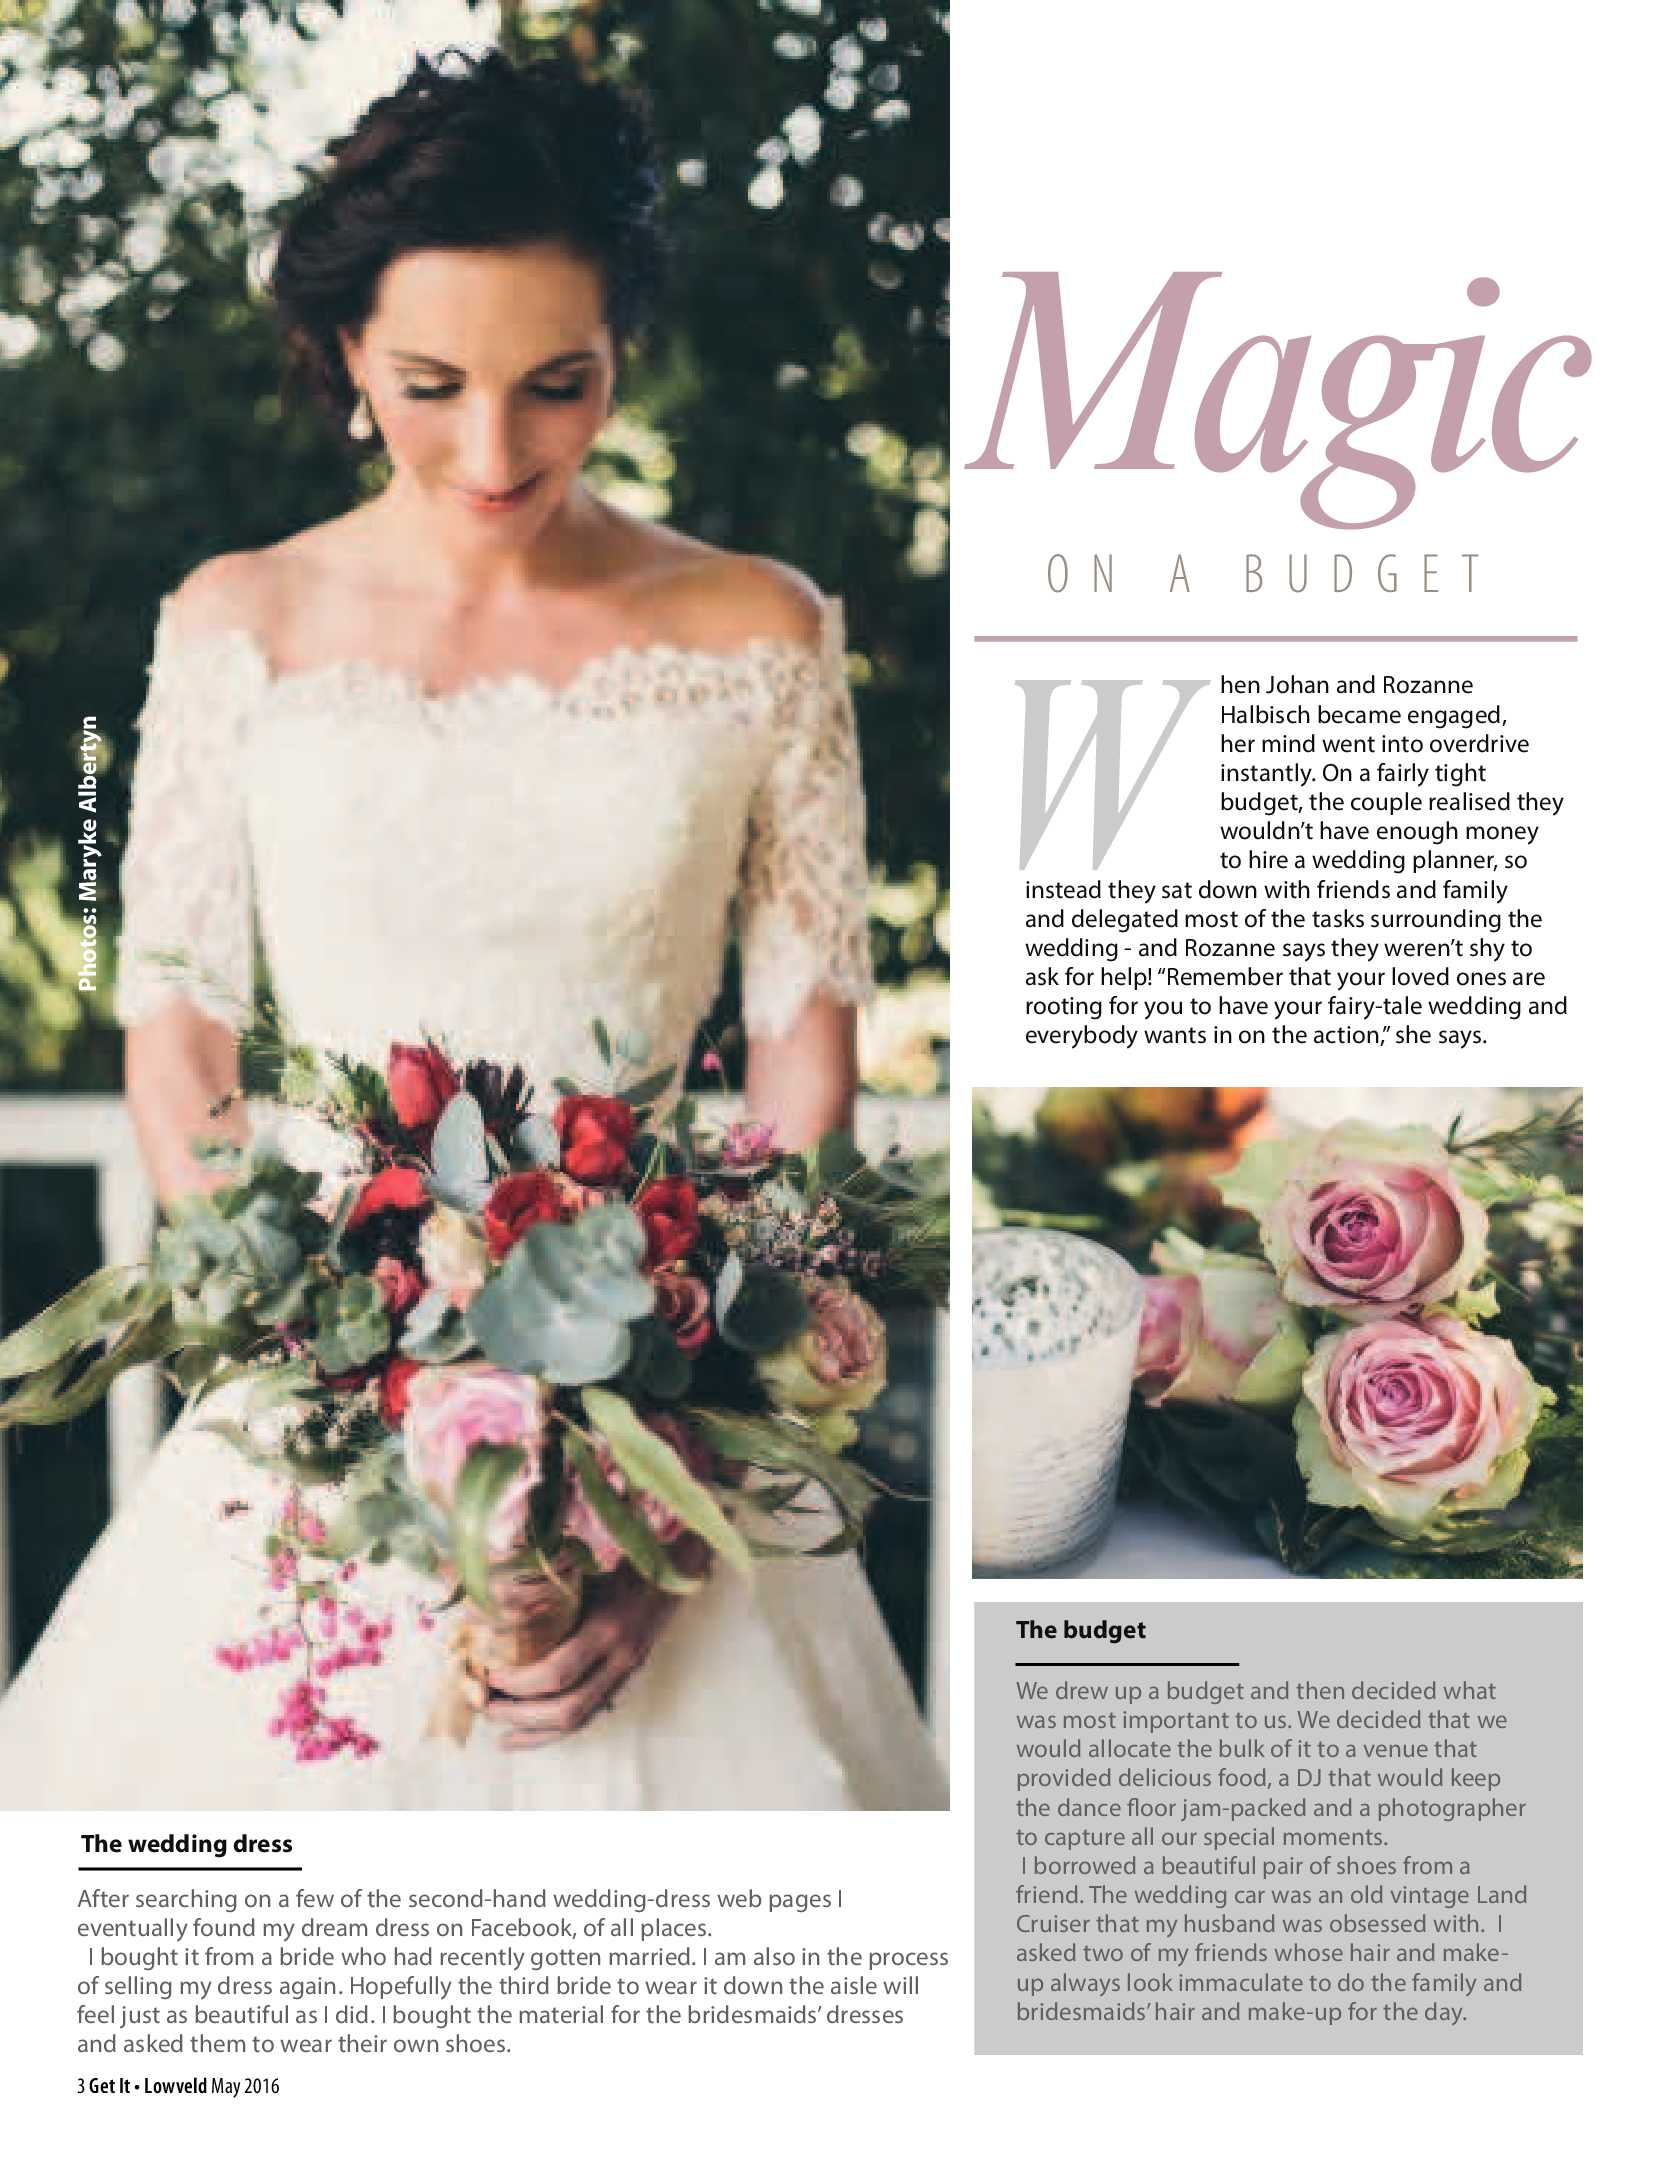 get-lowveld-bridal-supplement-2016-epapers-page-4